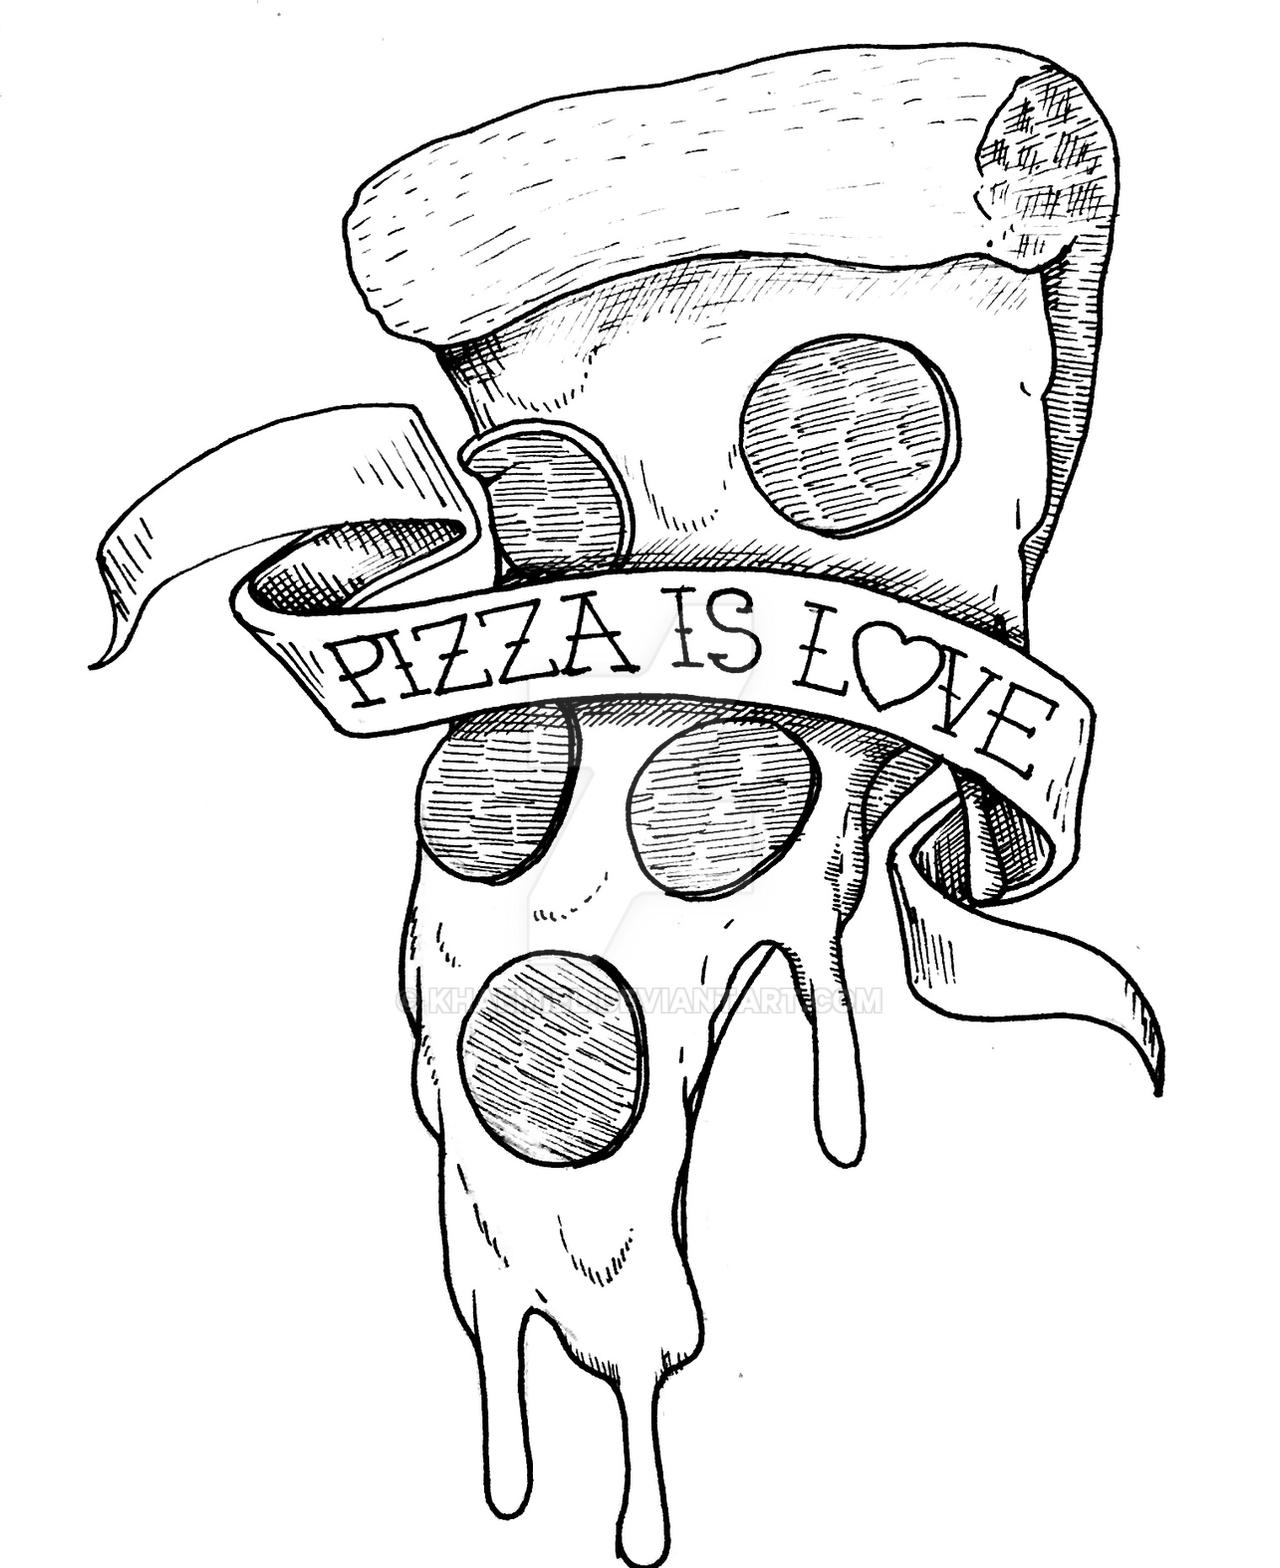 Tattoo pizza This local